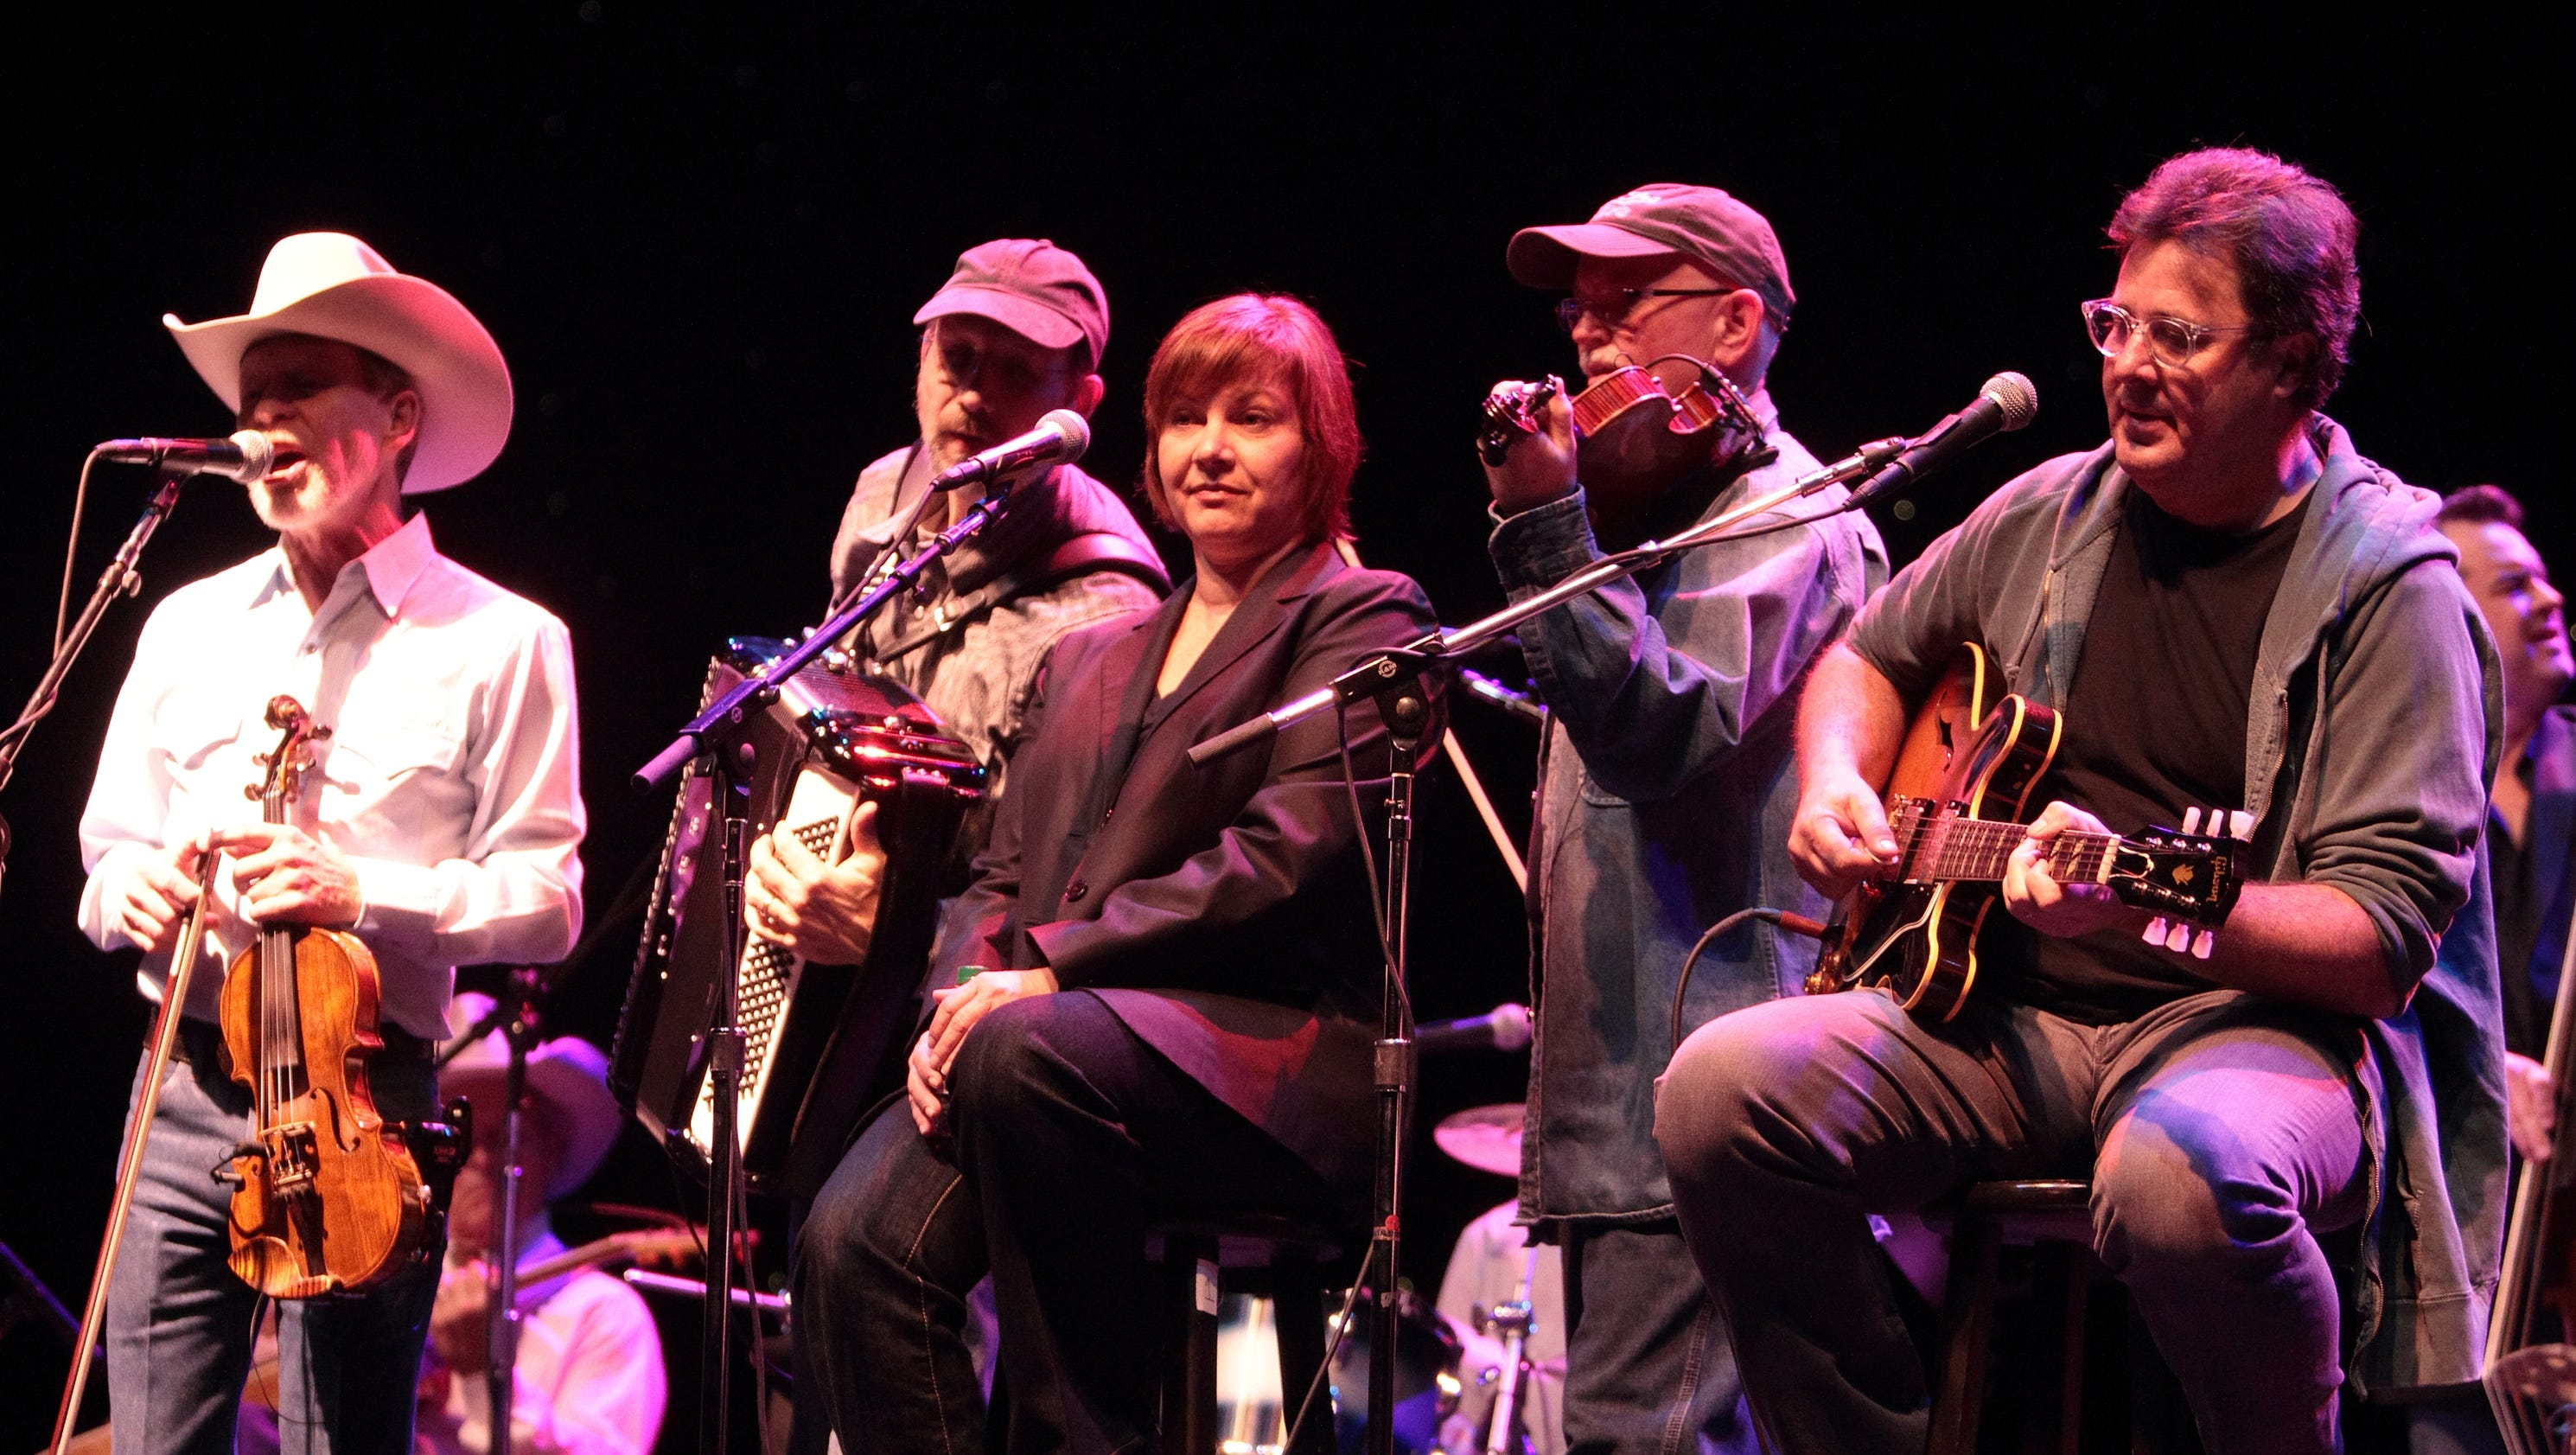 The Time Jumpers to perform in Hanover